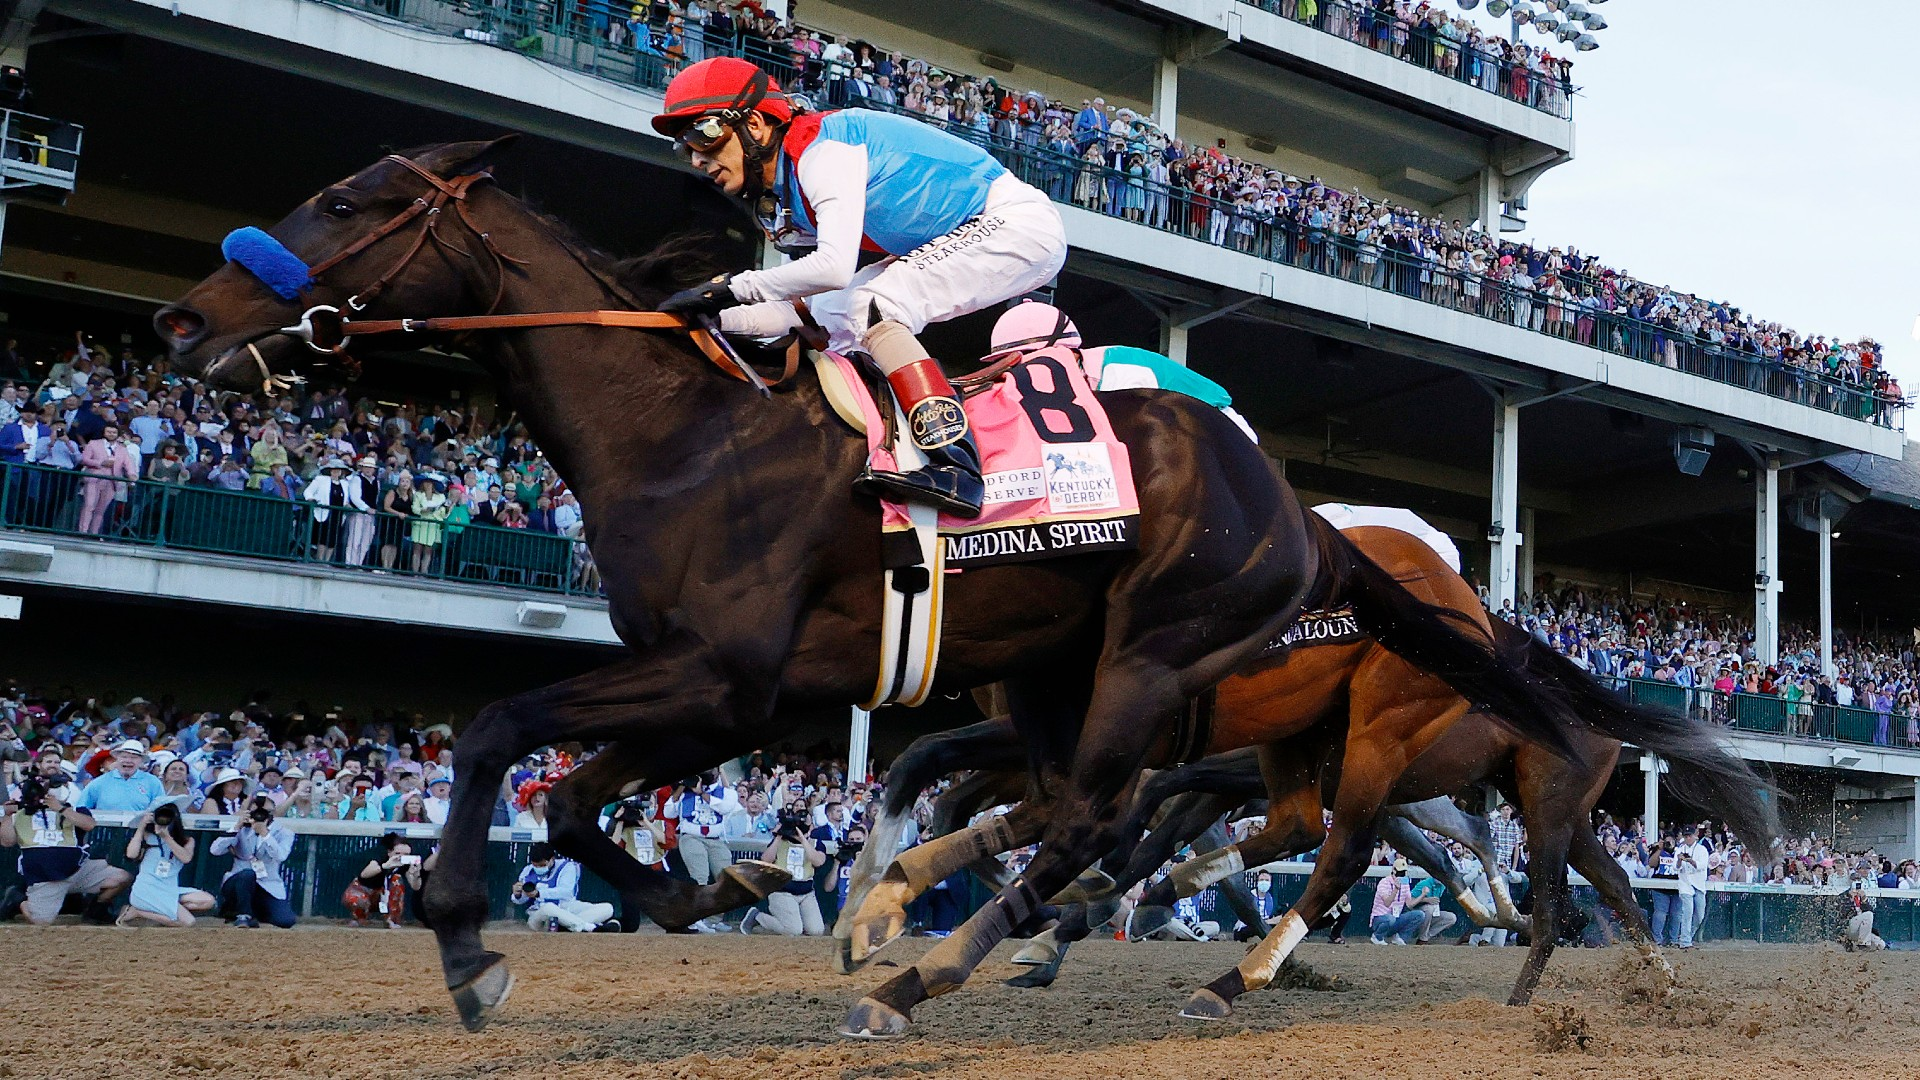 Medina Spirit Kentucky Derby winner to race at Preakness Stakes after passing final drug tests